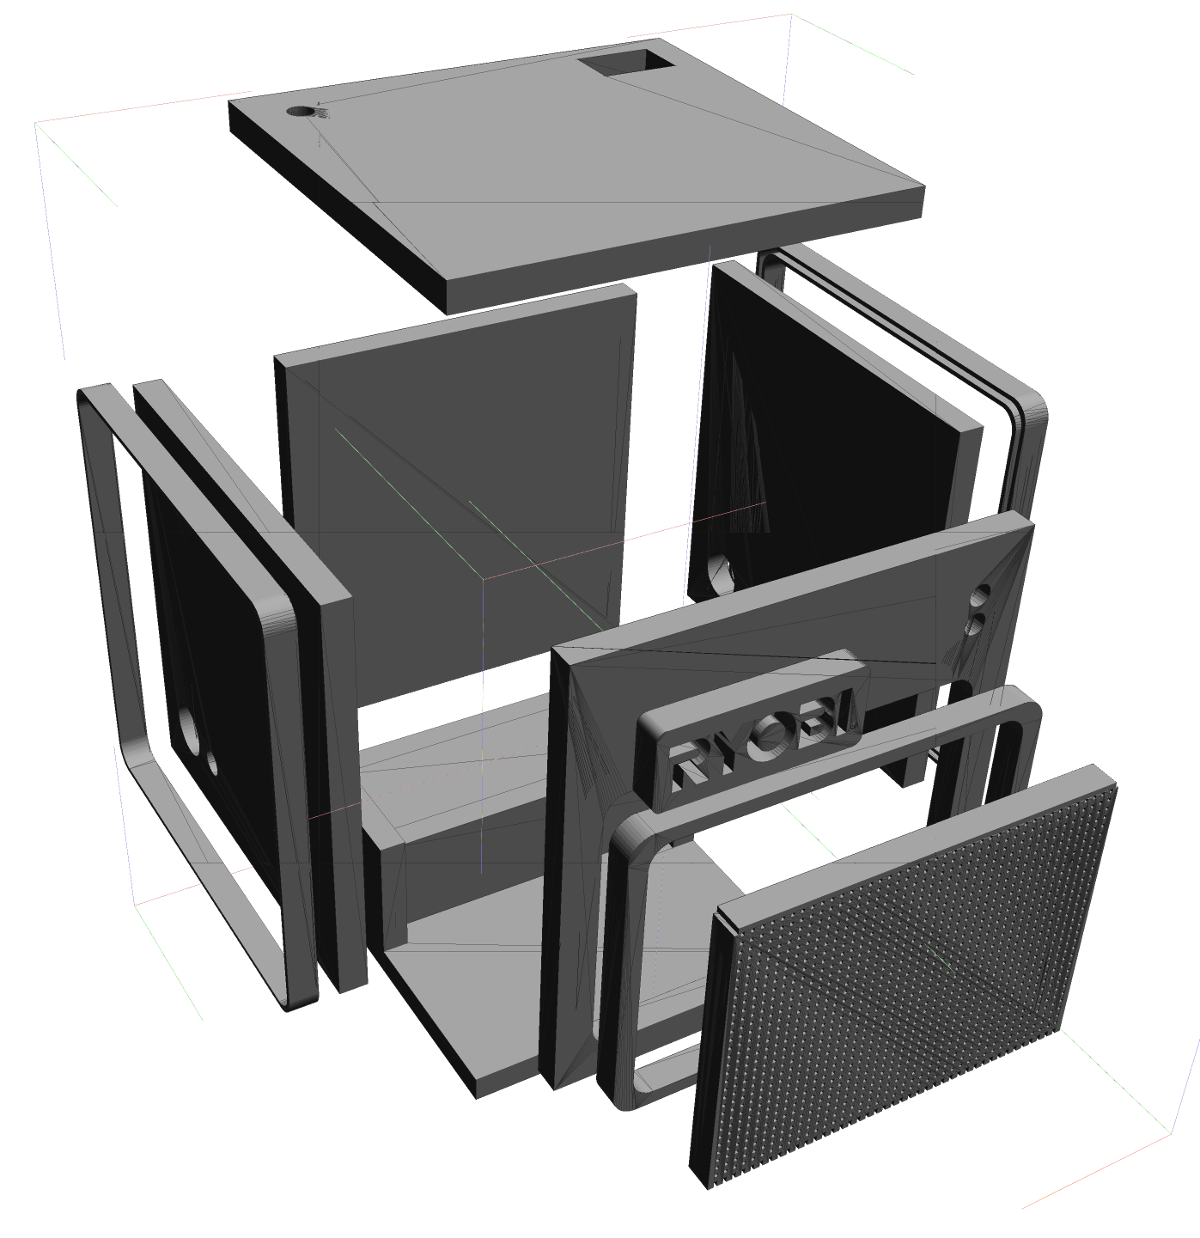 Exploded view of Cube